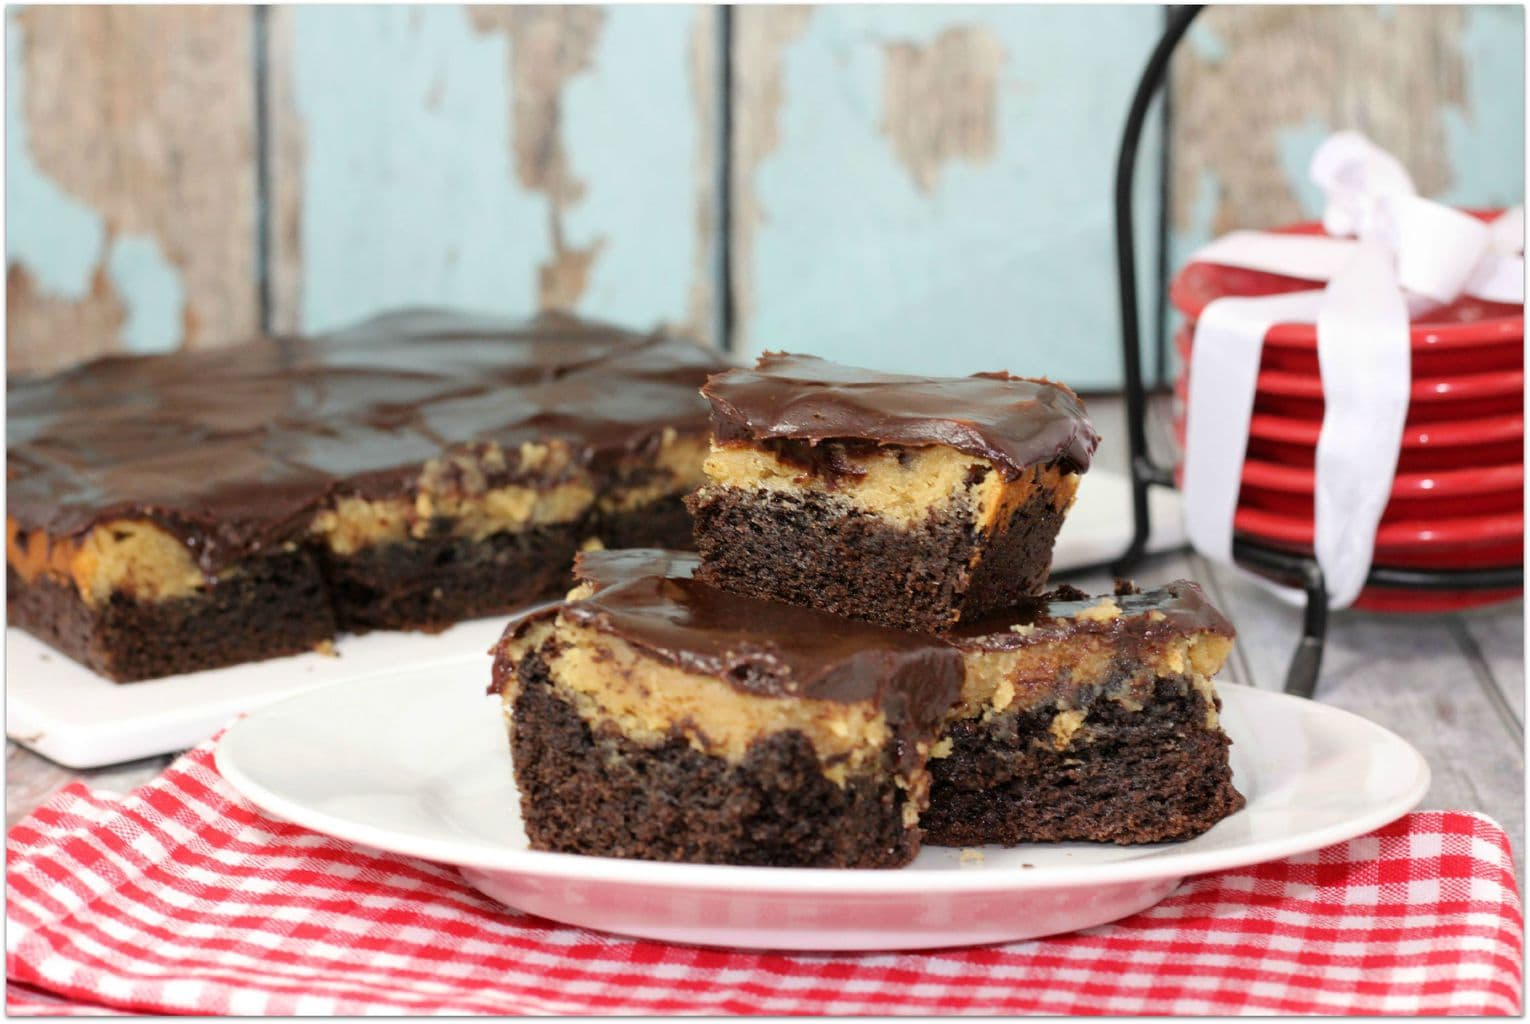 These Peanut Butter Chocolate Ooey Gooey Bars are so delicious, your family is going to ask for this recipe over and over again! Any dessert recipe with peanut butter and chocolate is a hit with my family! Can you imagine these warm with ice cream? It's the perfect after dinner dessert or after school treat!